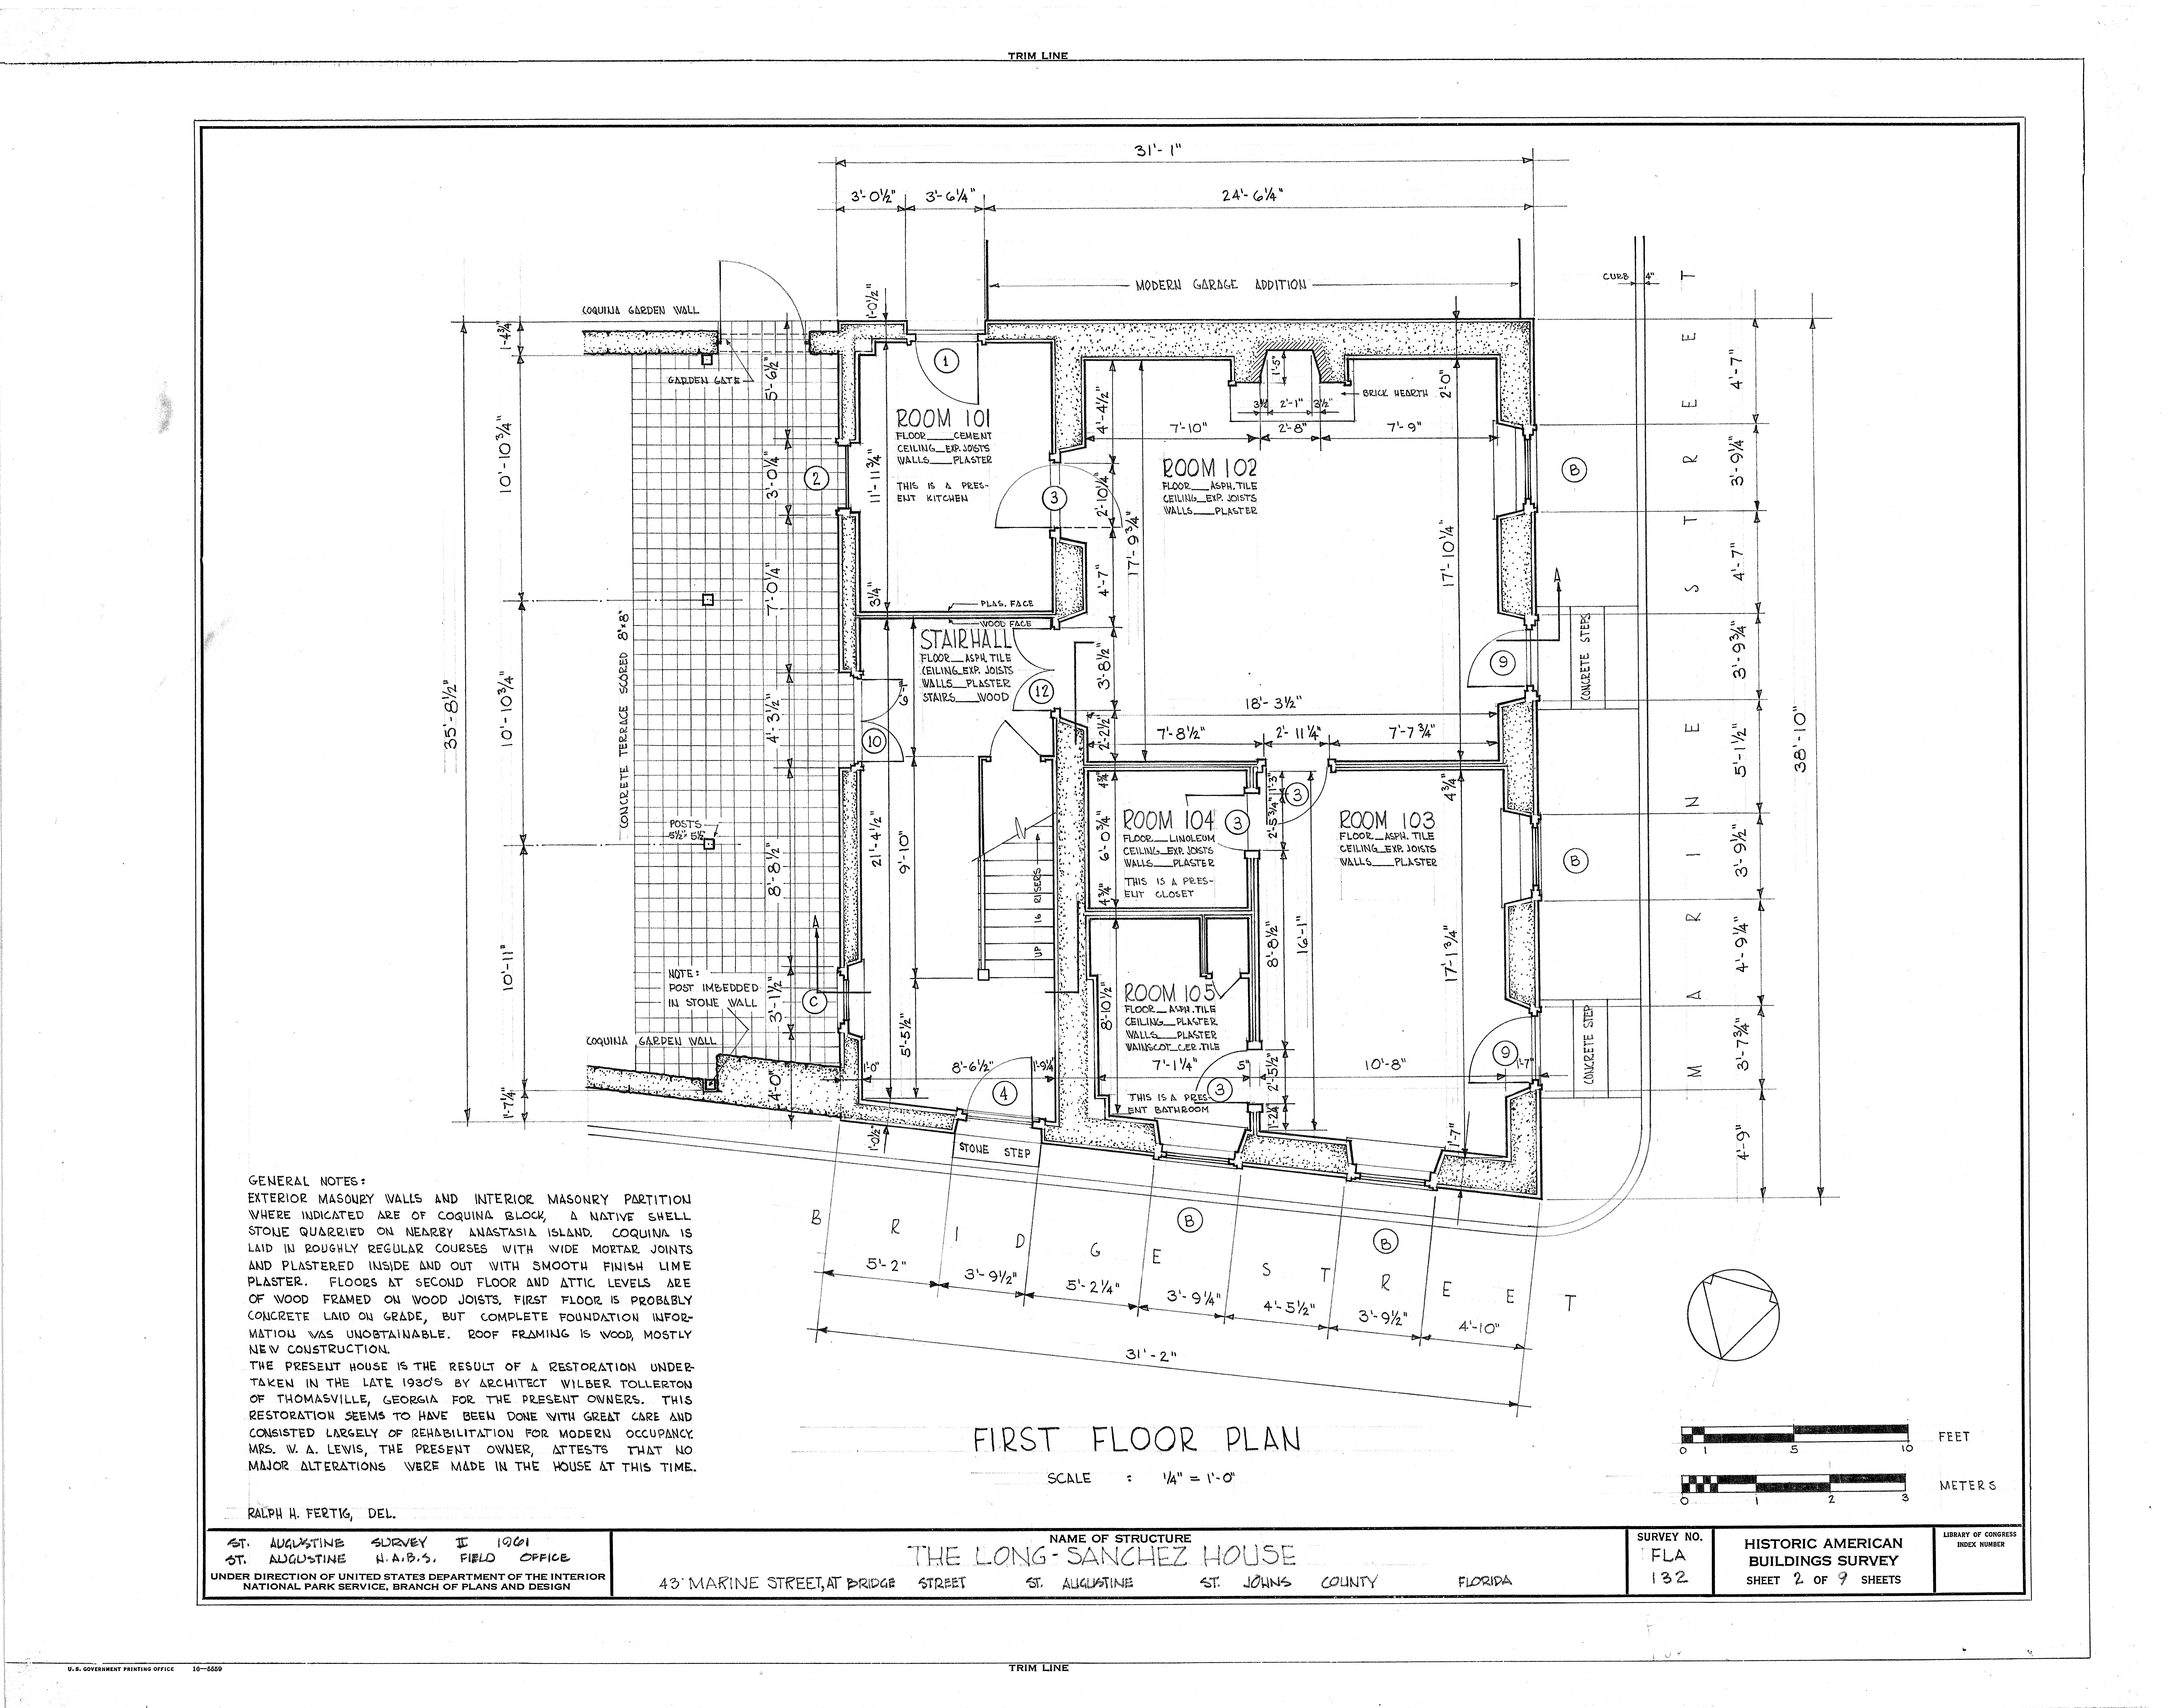 File first floor plan long sanchez house 43 marine for Flooring st augustine